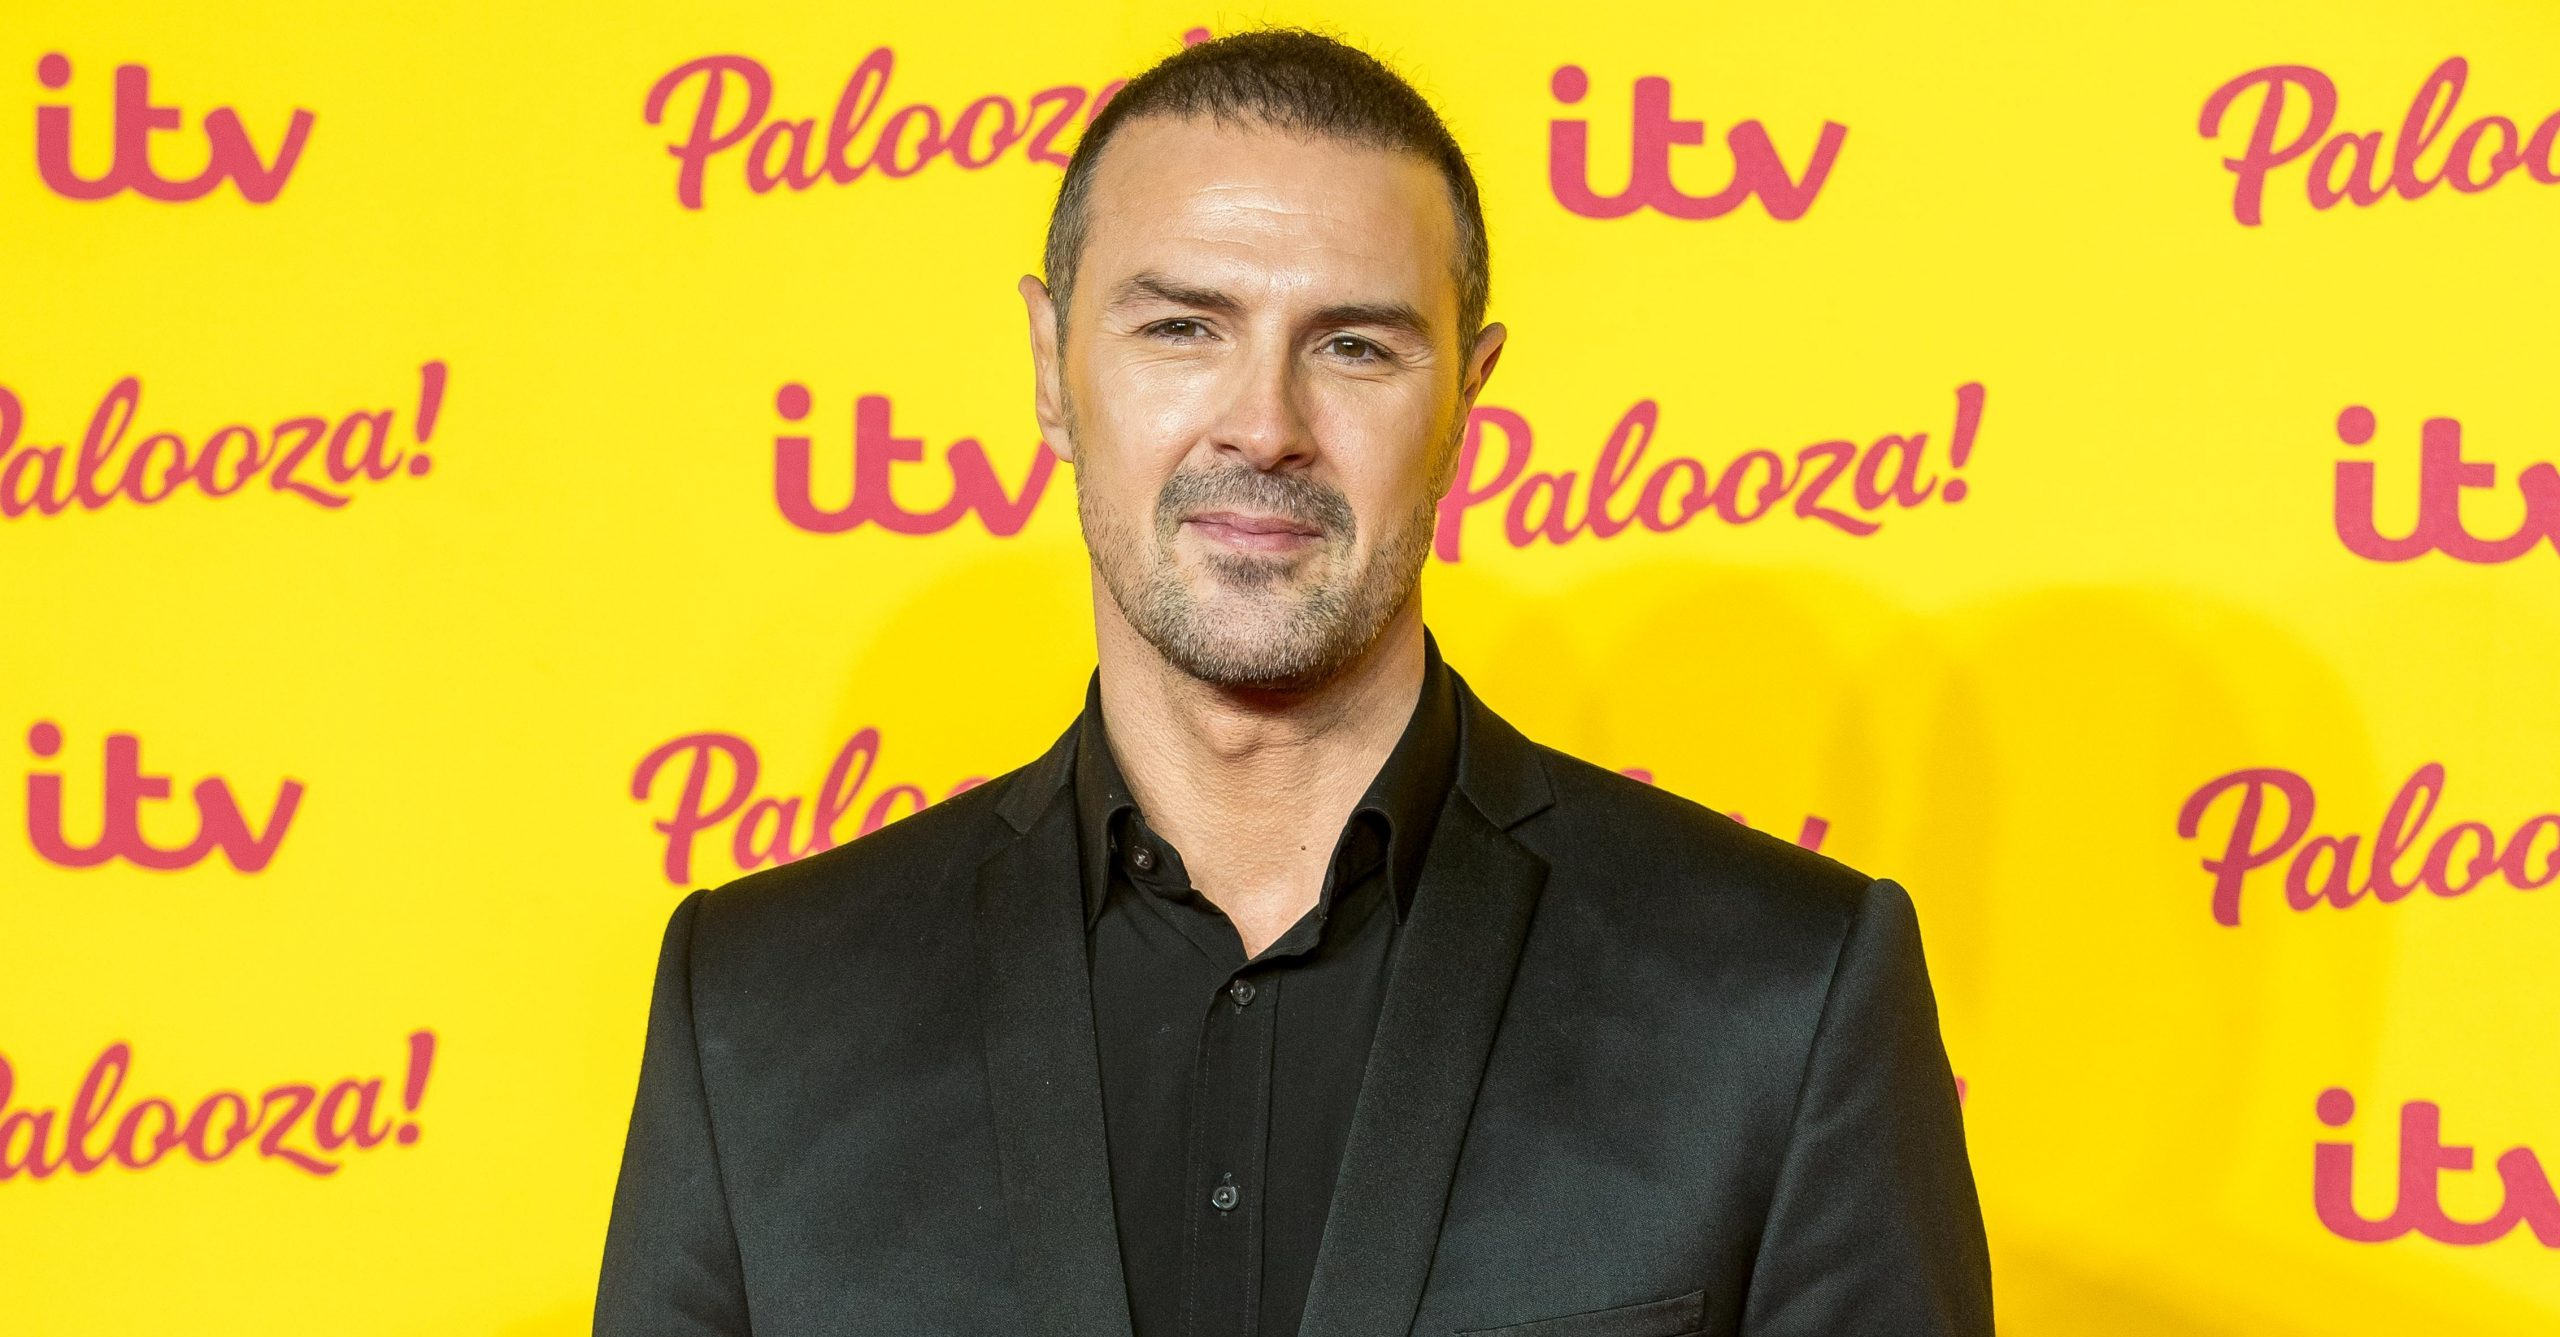 Paddy McGuinness stuns fans as he unveils bleached hair in lockdown